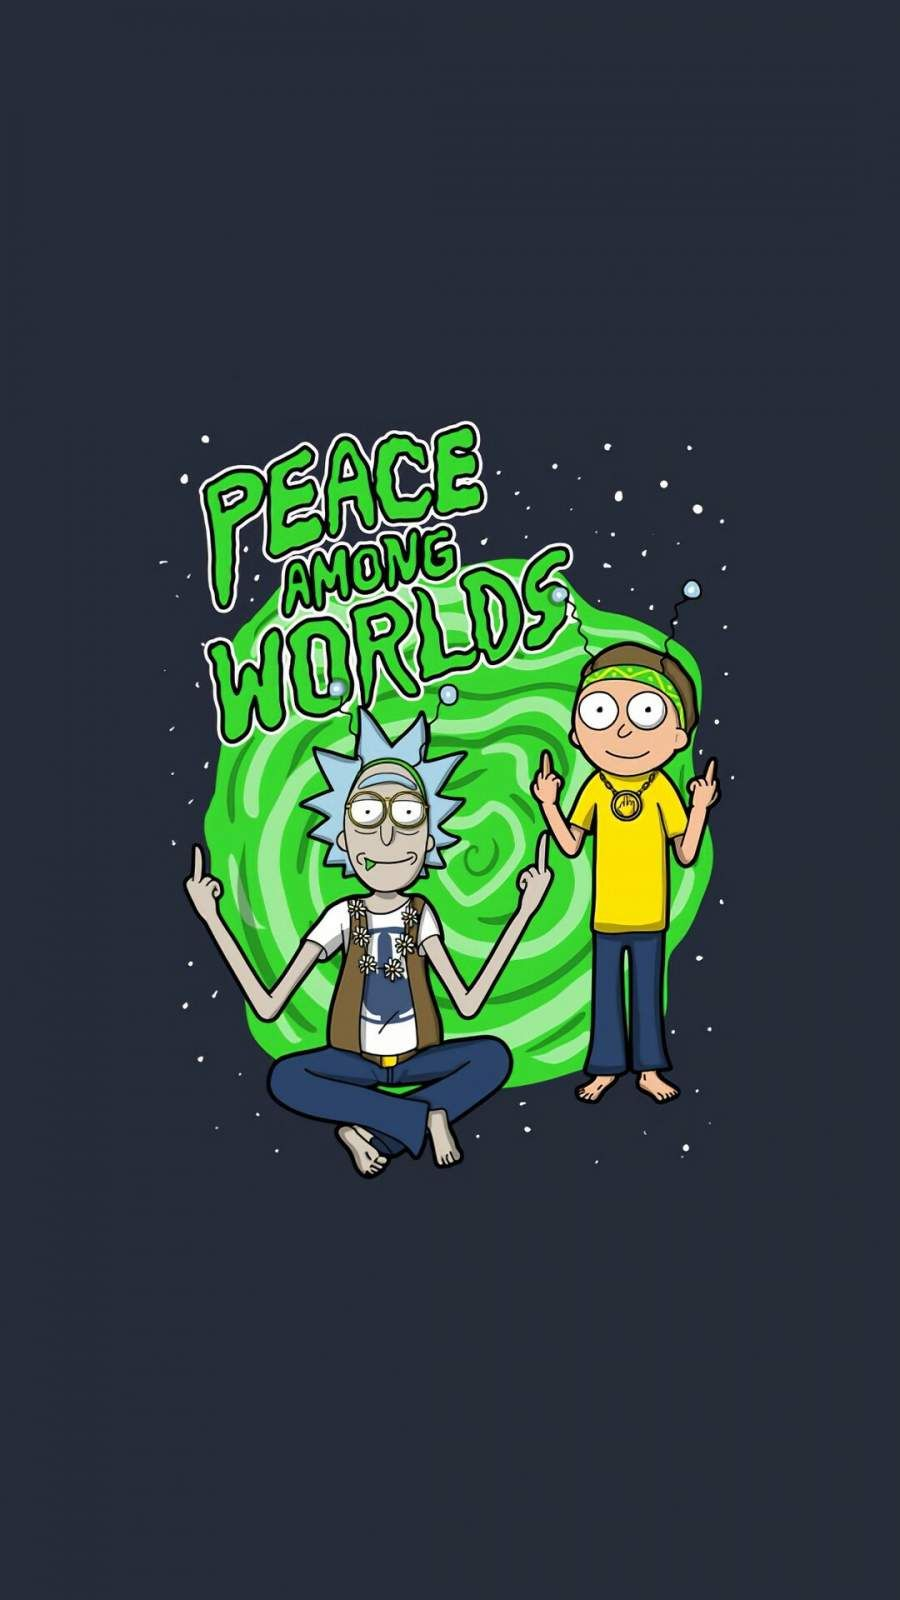 Rick And Morty Peace Among Words Iphone Wallpaper Rick And Morty Quotes Rick And Morty Stickers Iphone Wallpaper Rick And Morty